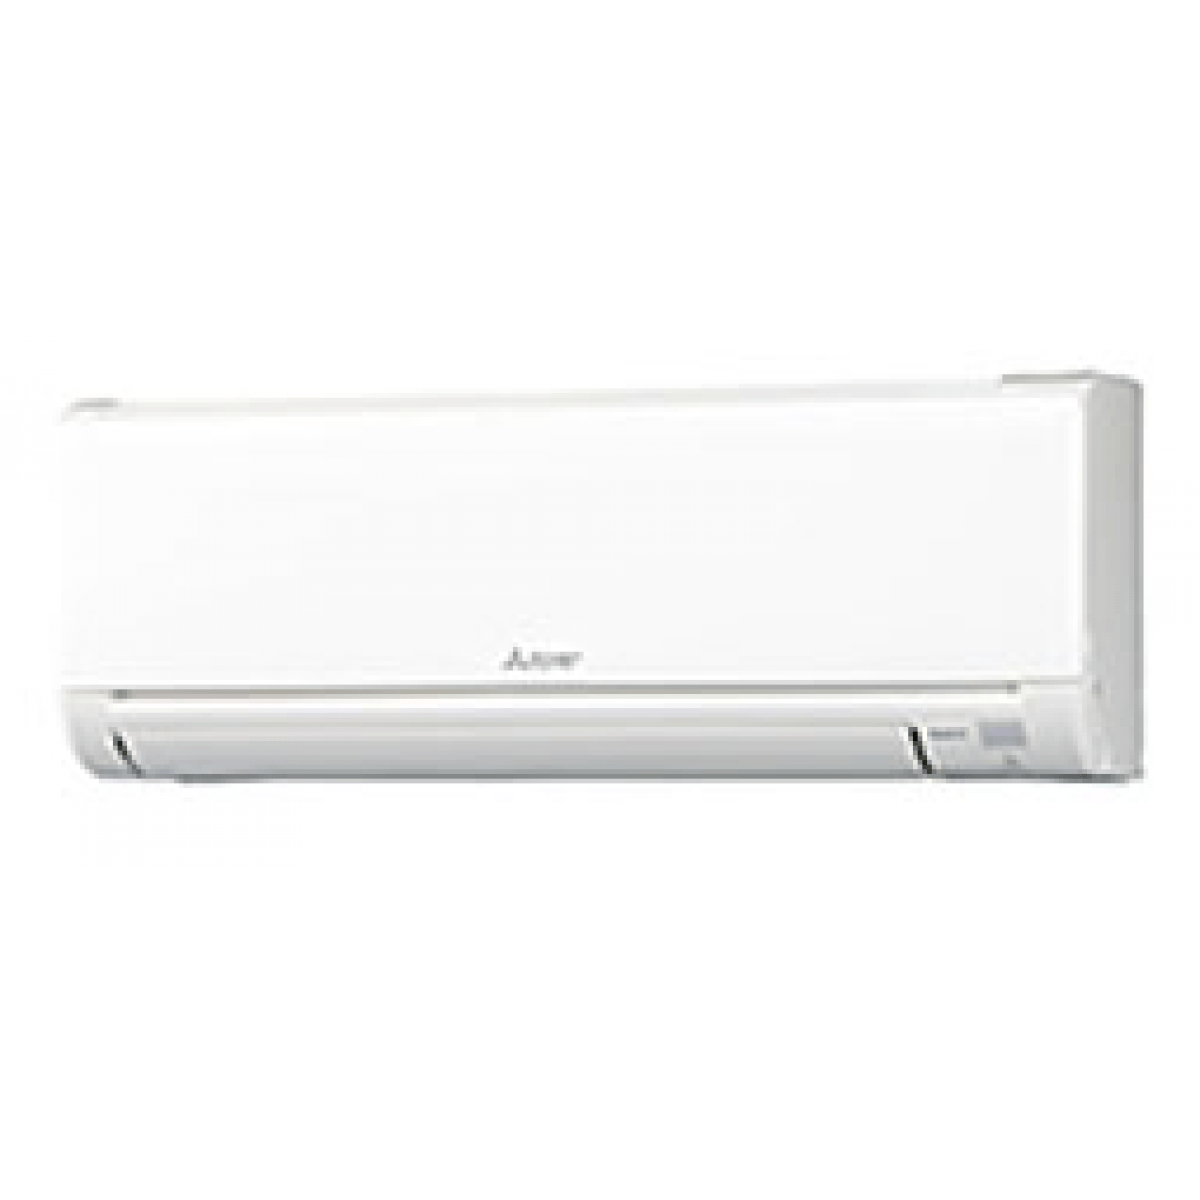 Home Air Conditioning Units Sale